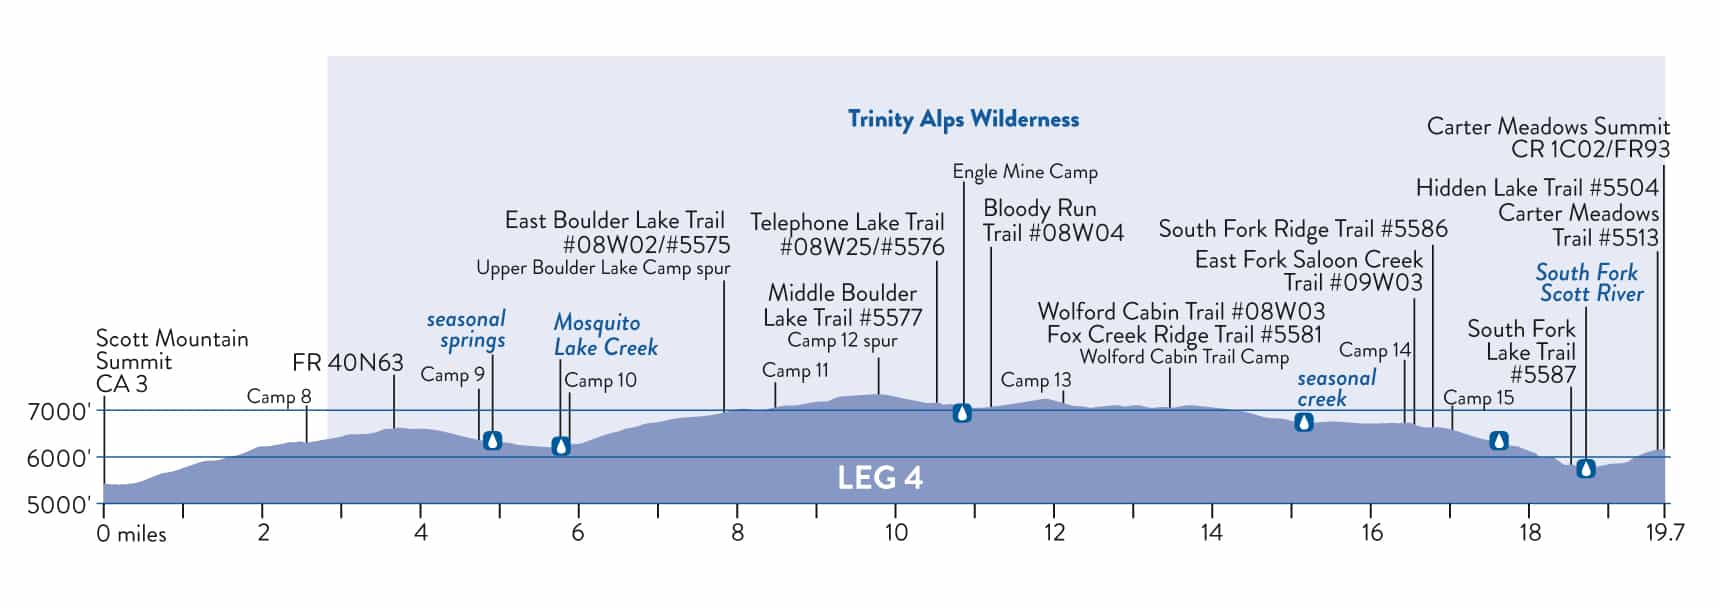 Trinity Alps Pacific Crest Trail Section: Scott Mountain Summit to Carter Meadow Summit elevation profile